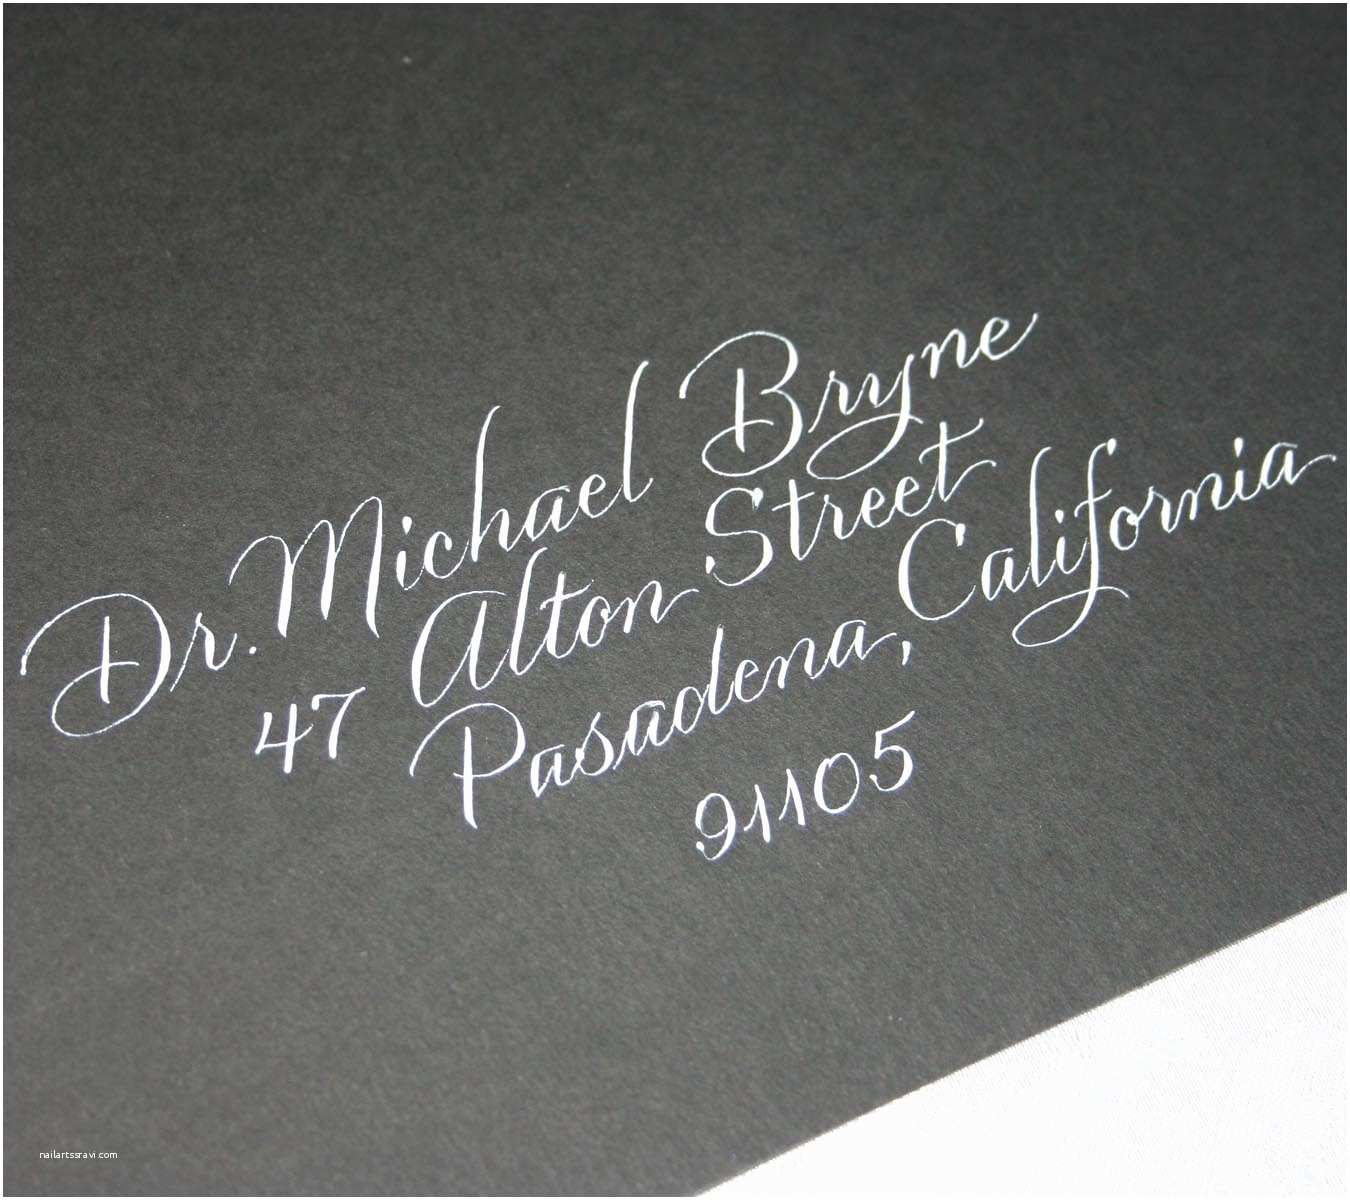 Wedding Invitation Addressing Service Wedding Calligraphy Envelope Addressing Calligraphy Service